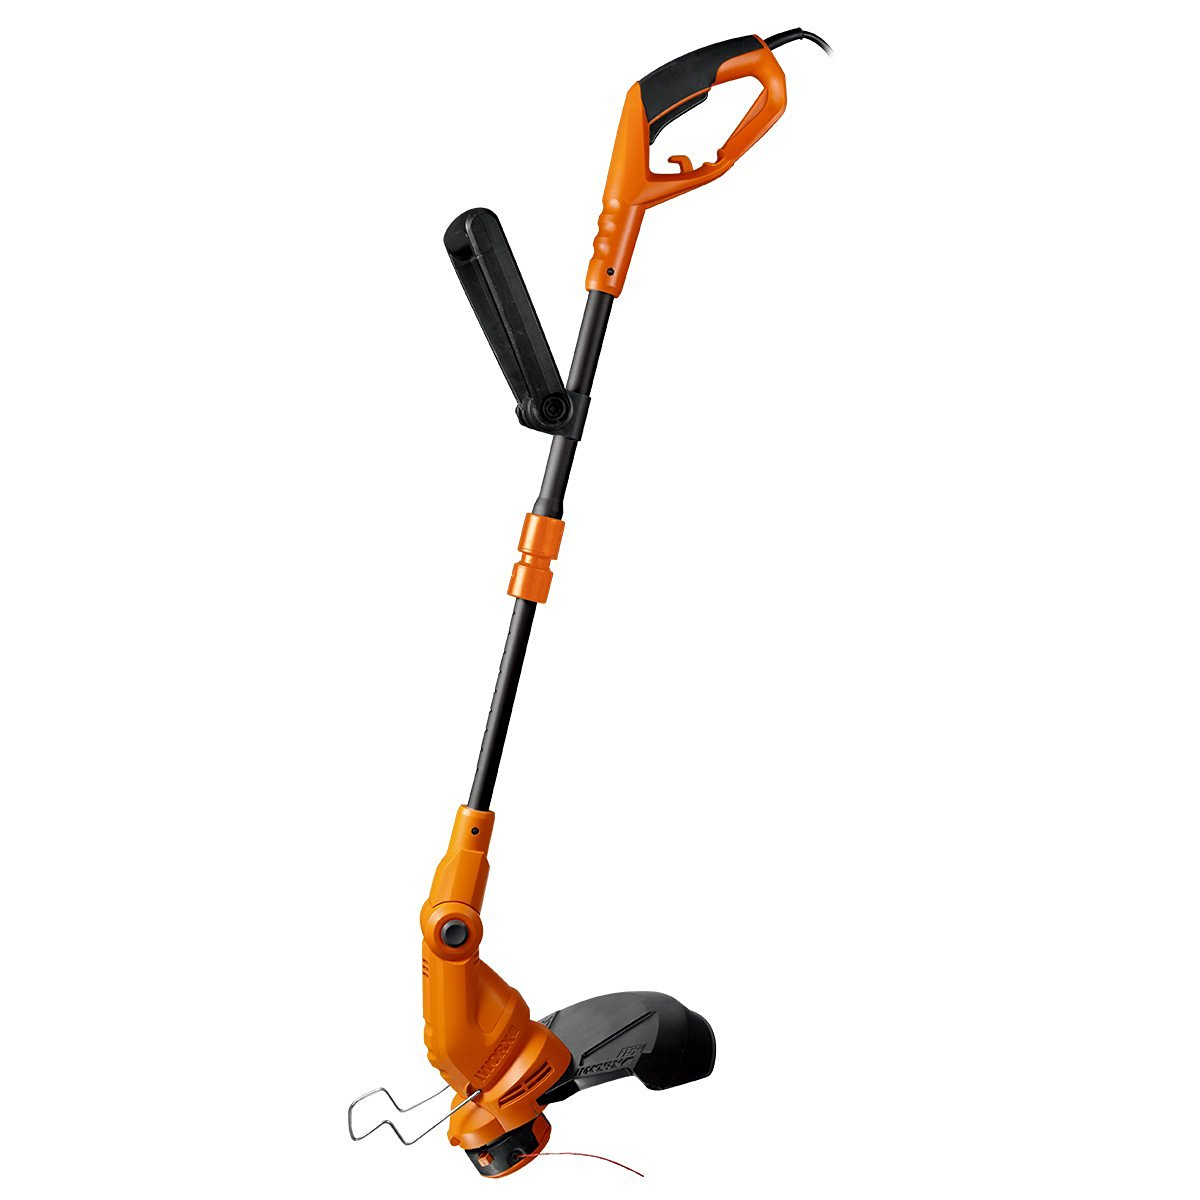 WORX WG119 Electric Grass Trimmer with Tilting Shaft